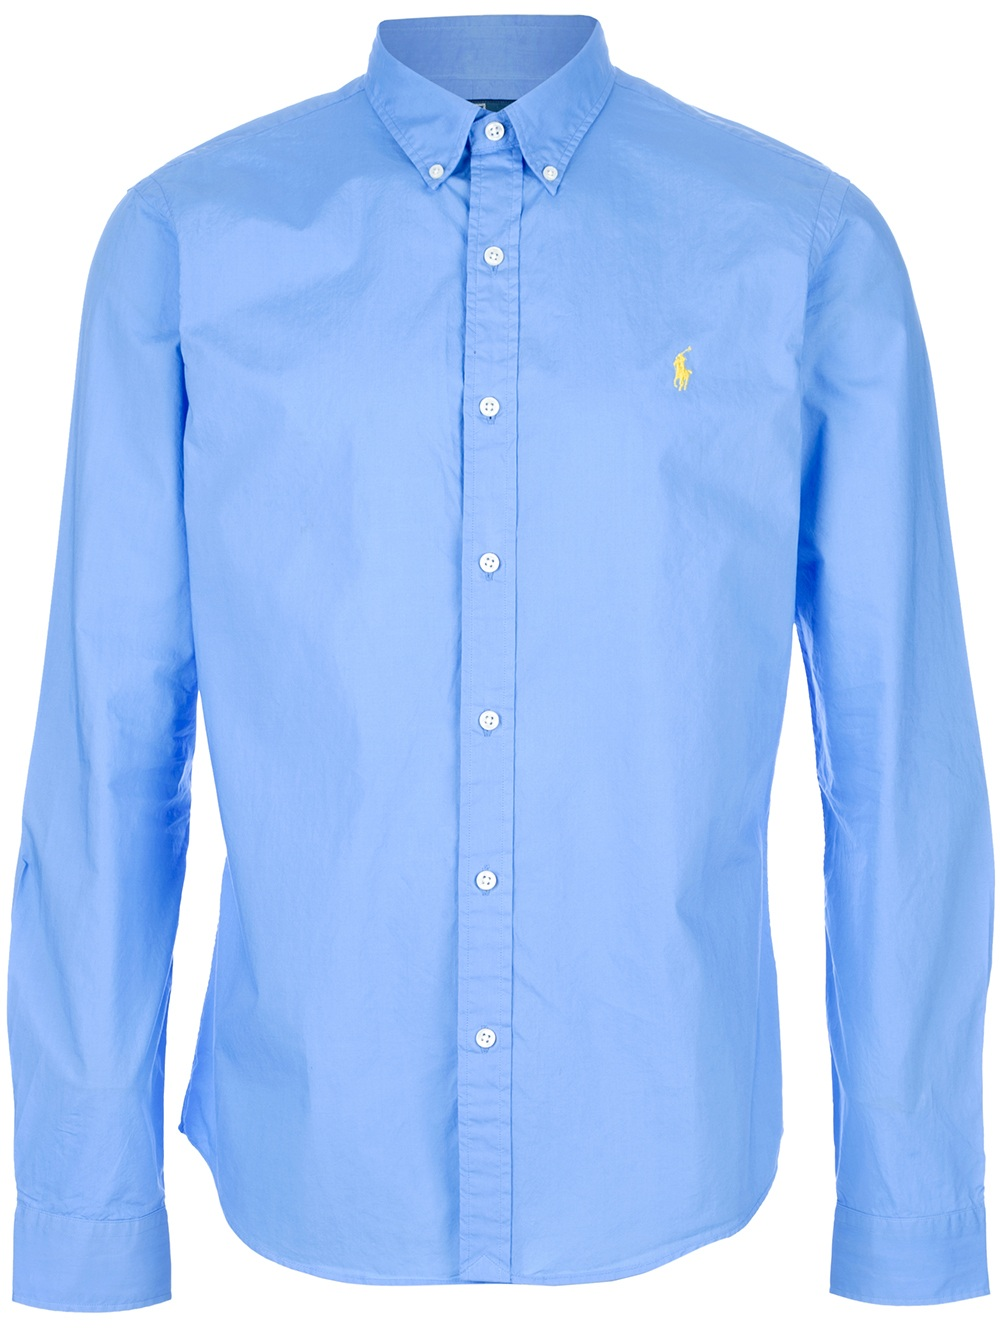 Lyst - Polo ralph lauren Button Down Shirt in Blue for Men